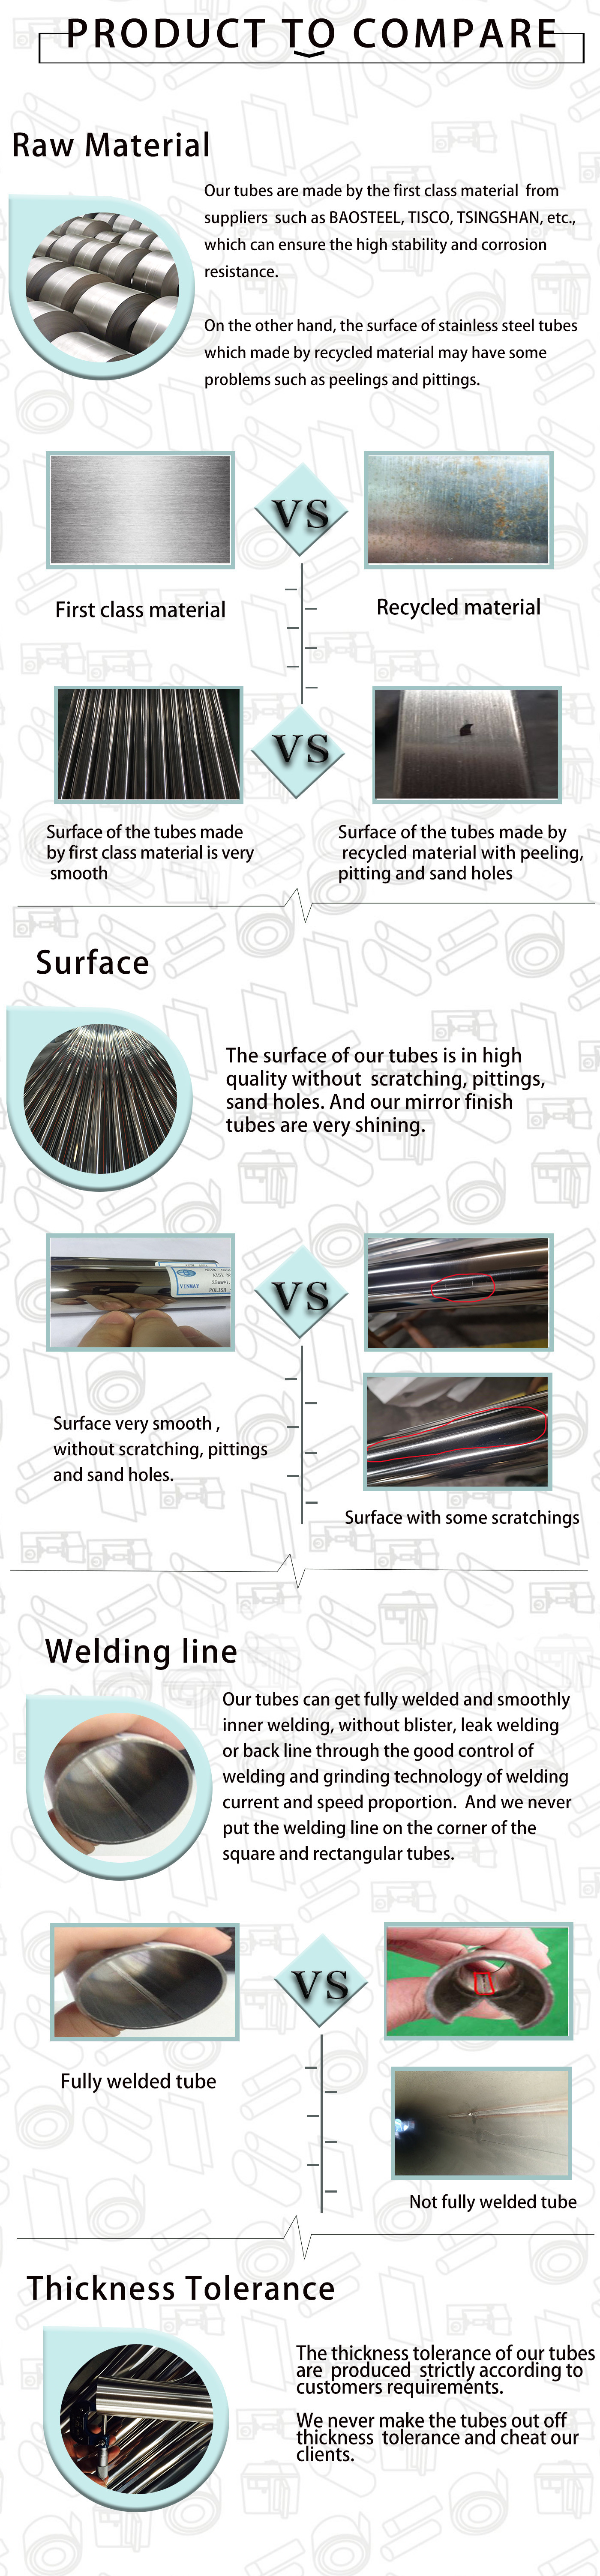 stainless steel pipe quality